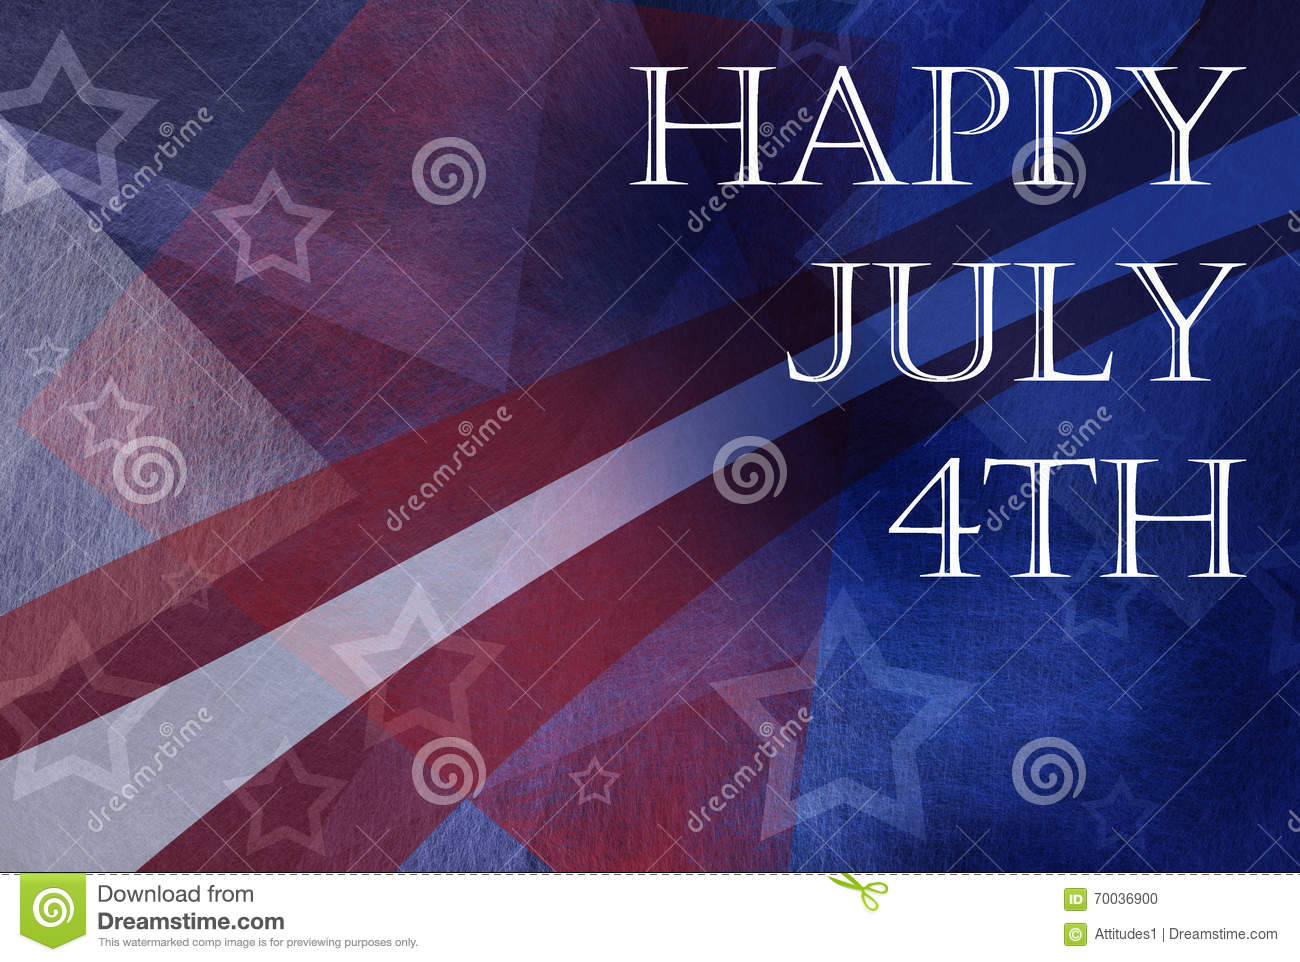 Happy july 4th background design with stripes and stars in for Th background color